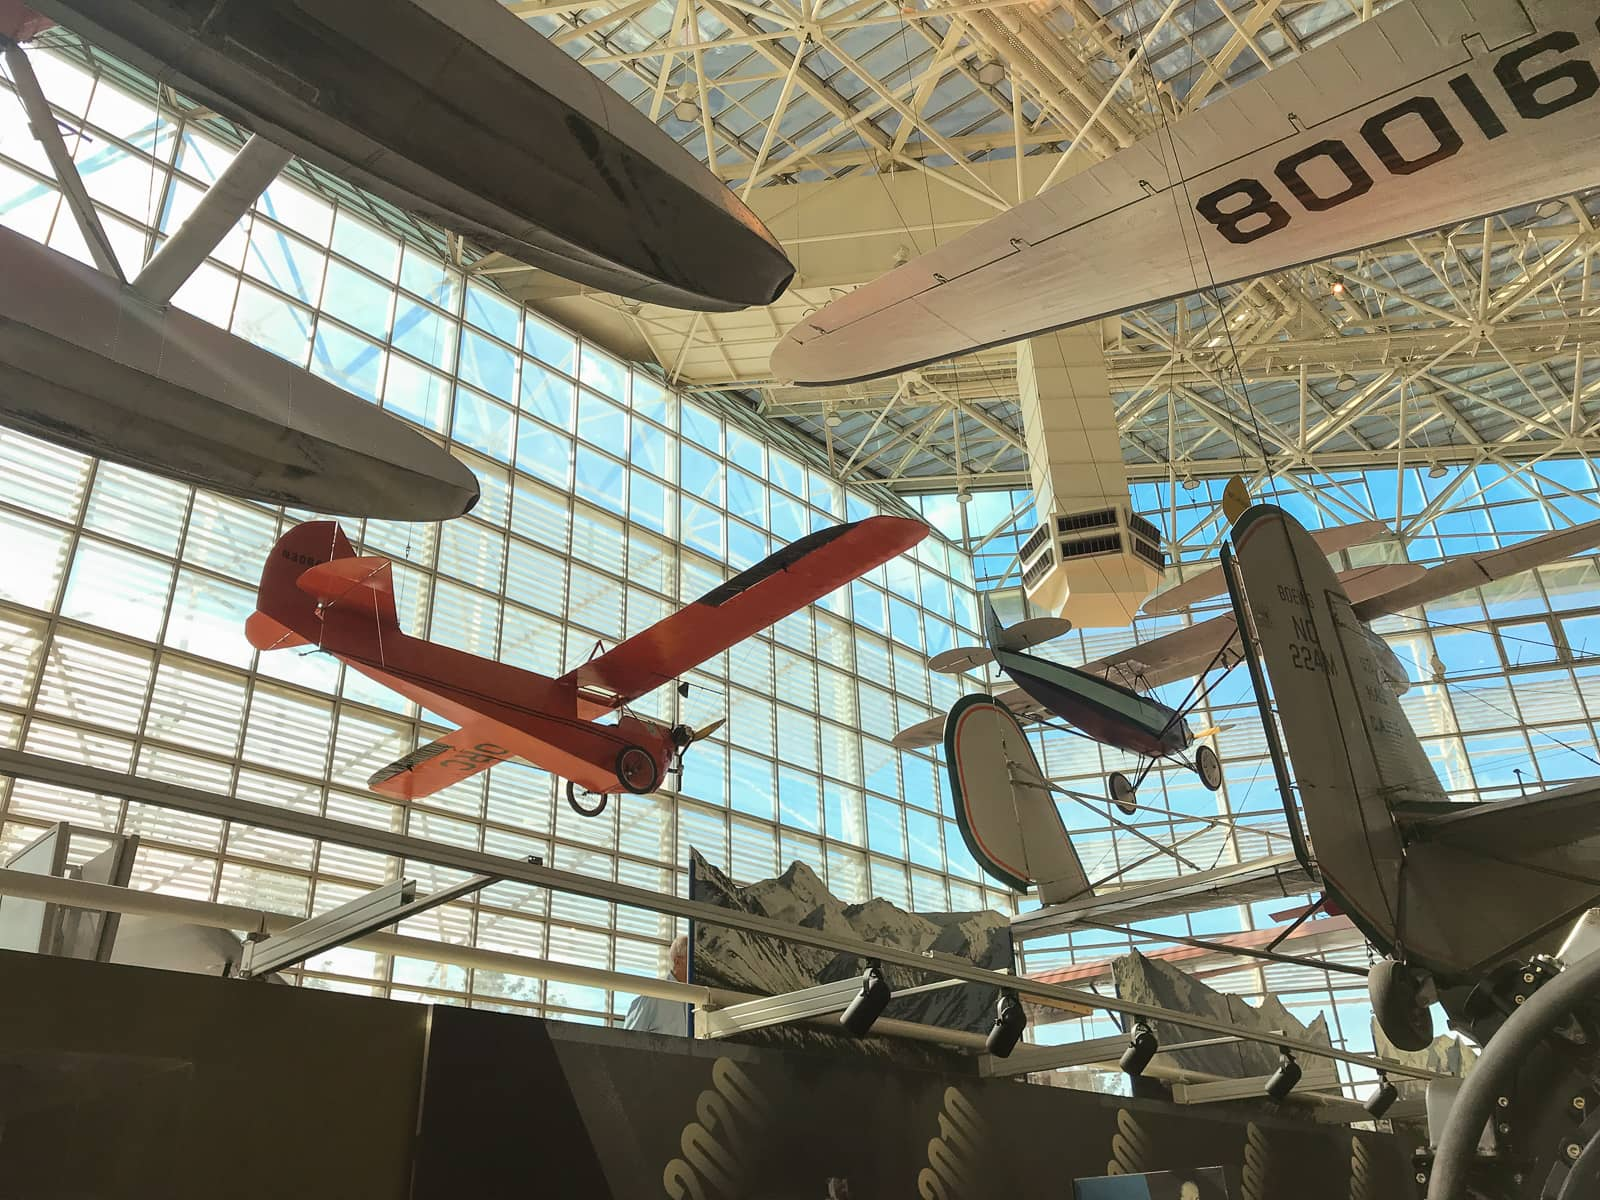 A view of the inside of the same building as previous photos, but looking outside the glass walls of the museum, with more planes being shown suspended from the ceiling